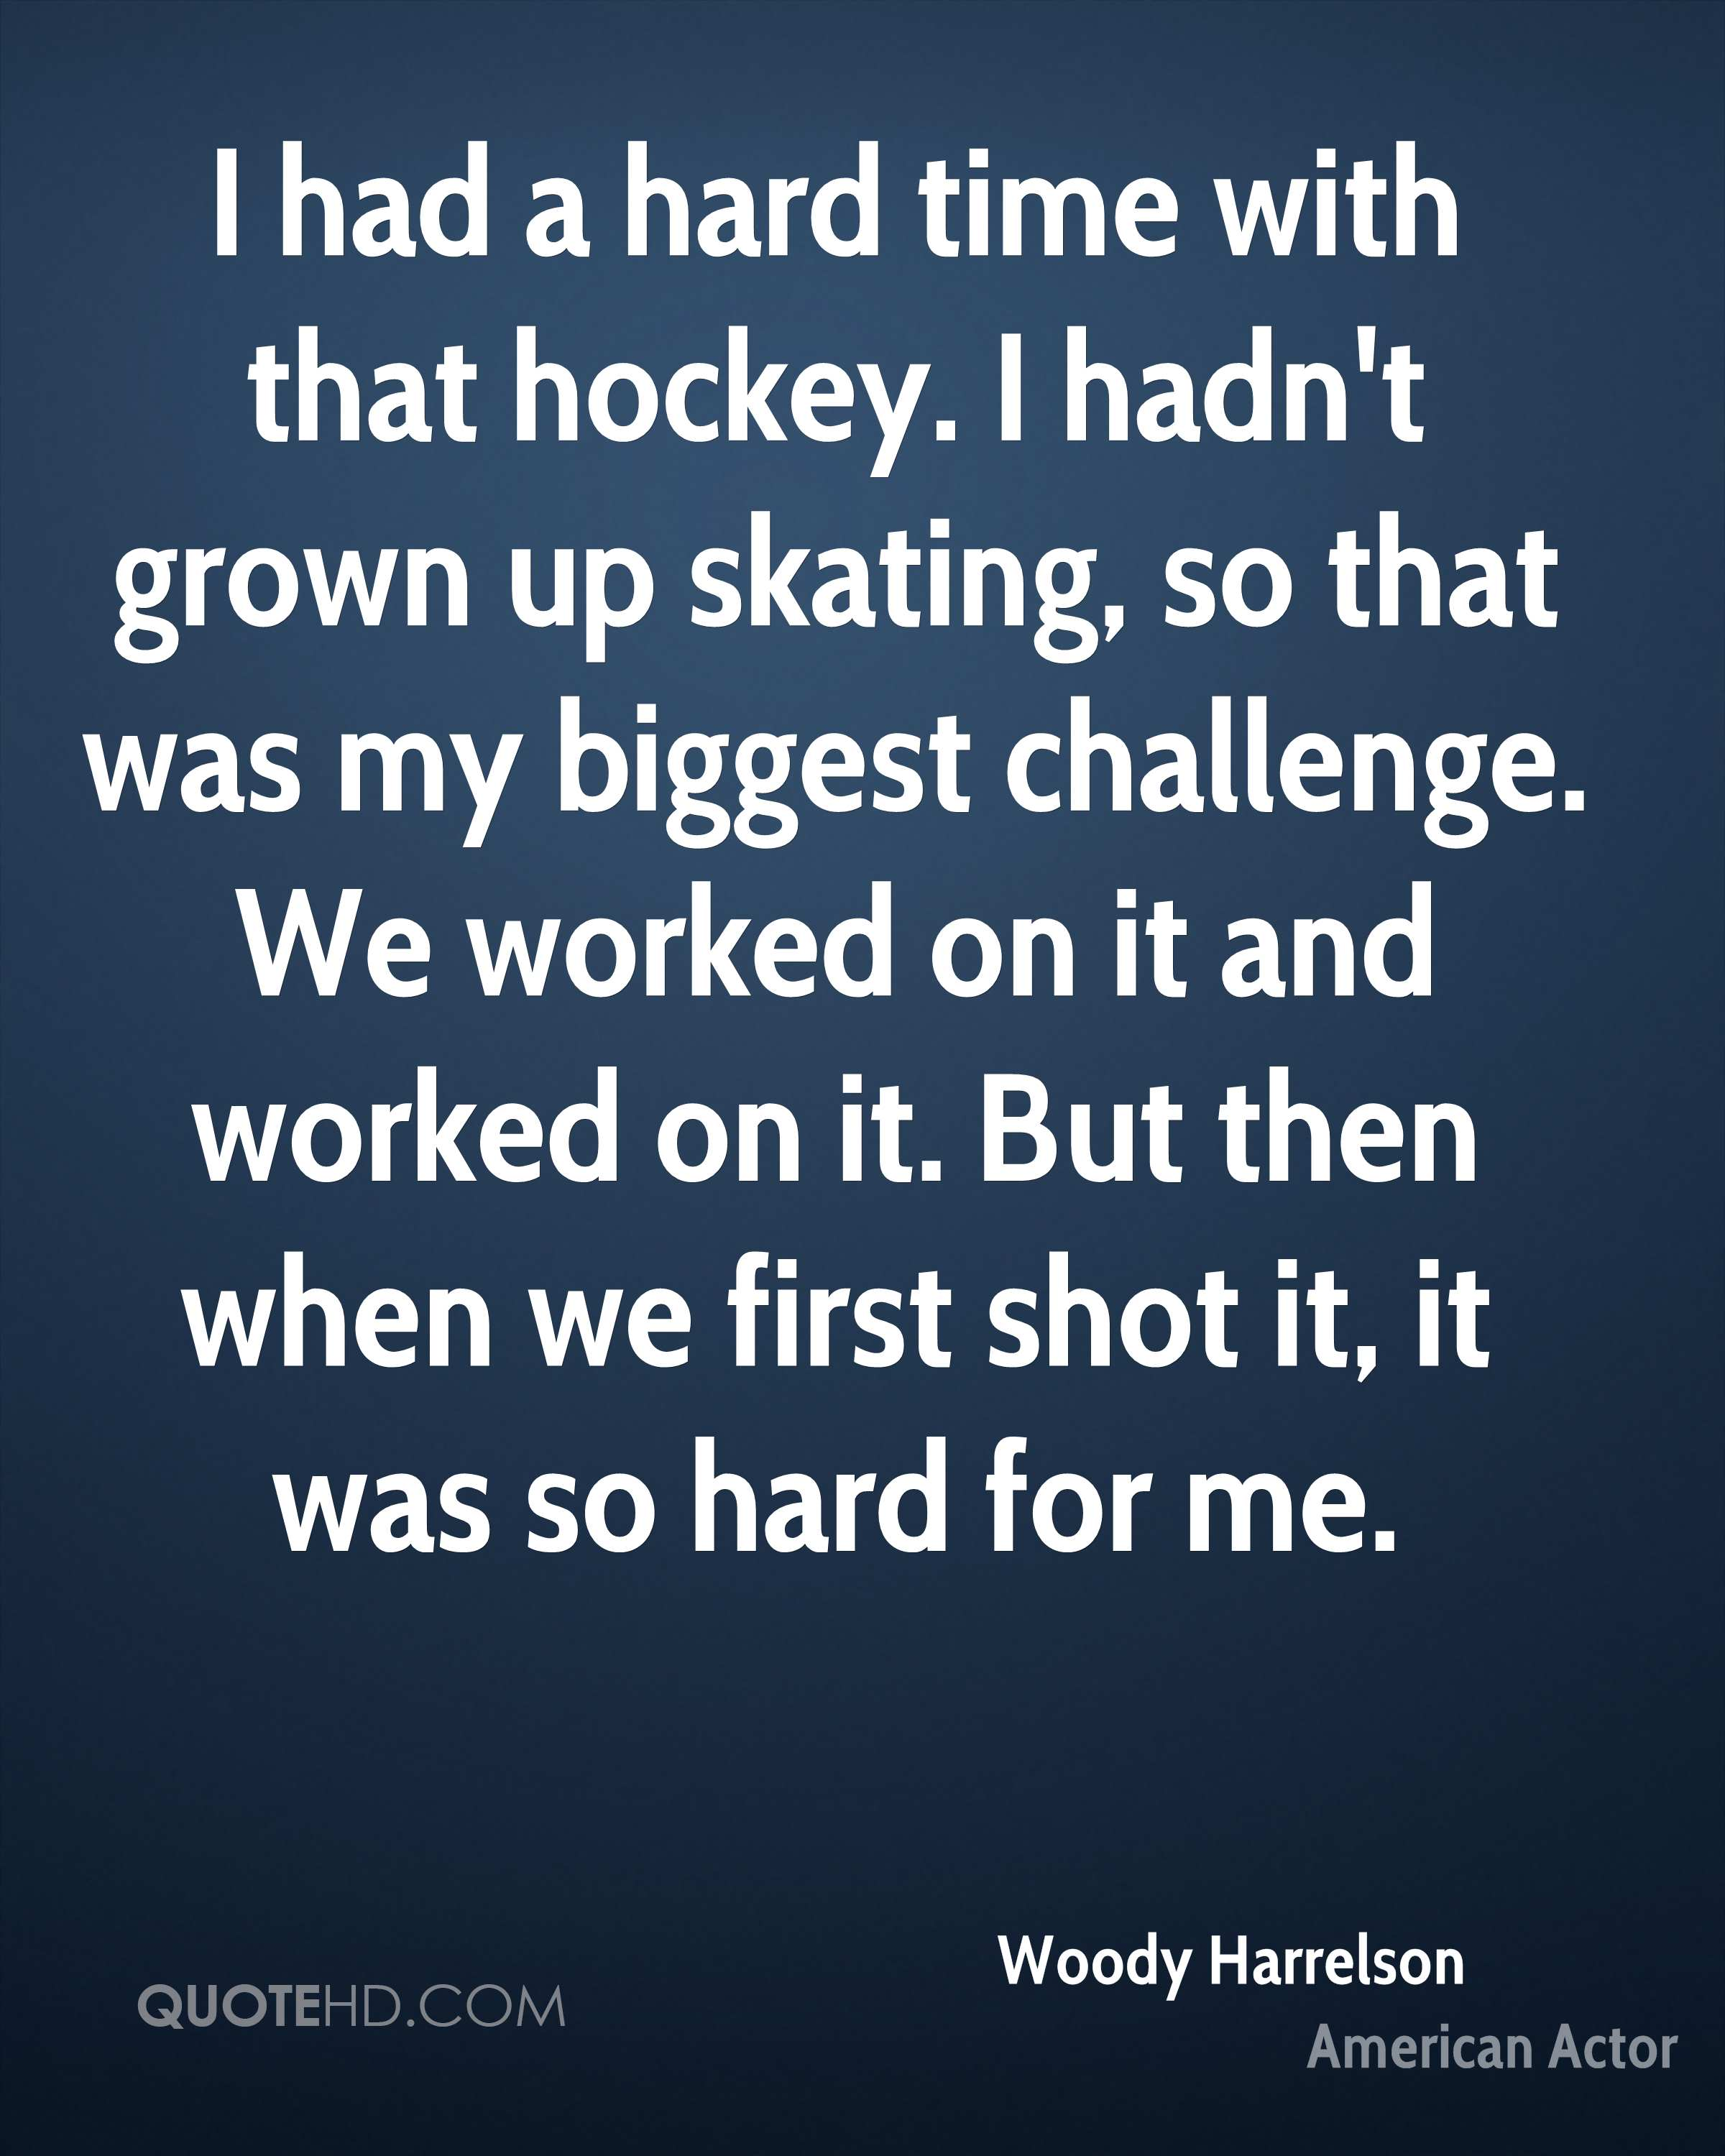 I had a hard time with that hockey. I hadn't grown up skating, so that was my biggest challenge. We worked on it and worked on it. But then when we first shot it, it was so hard for me.